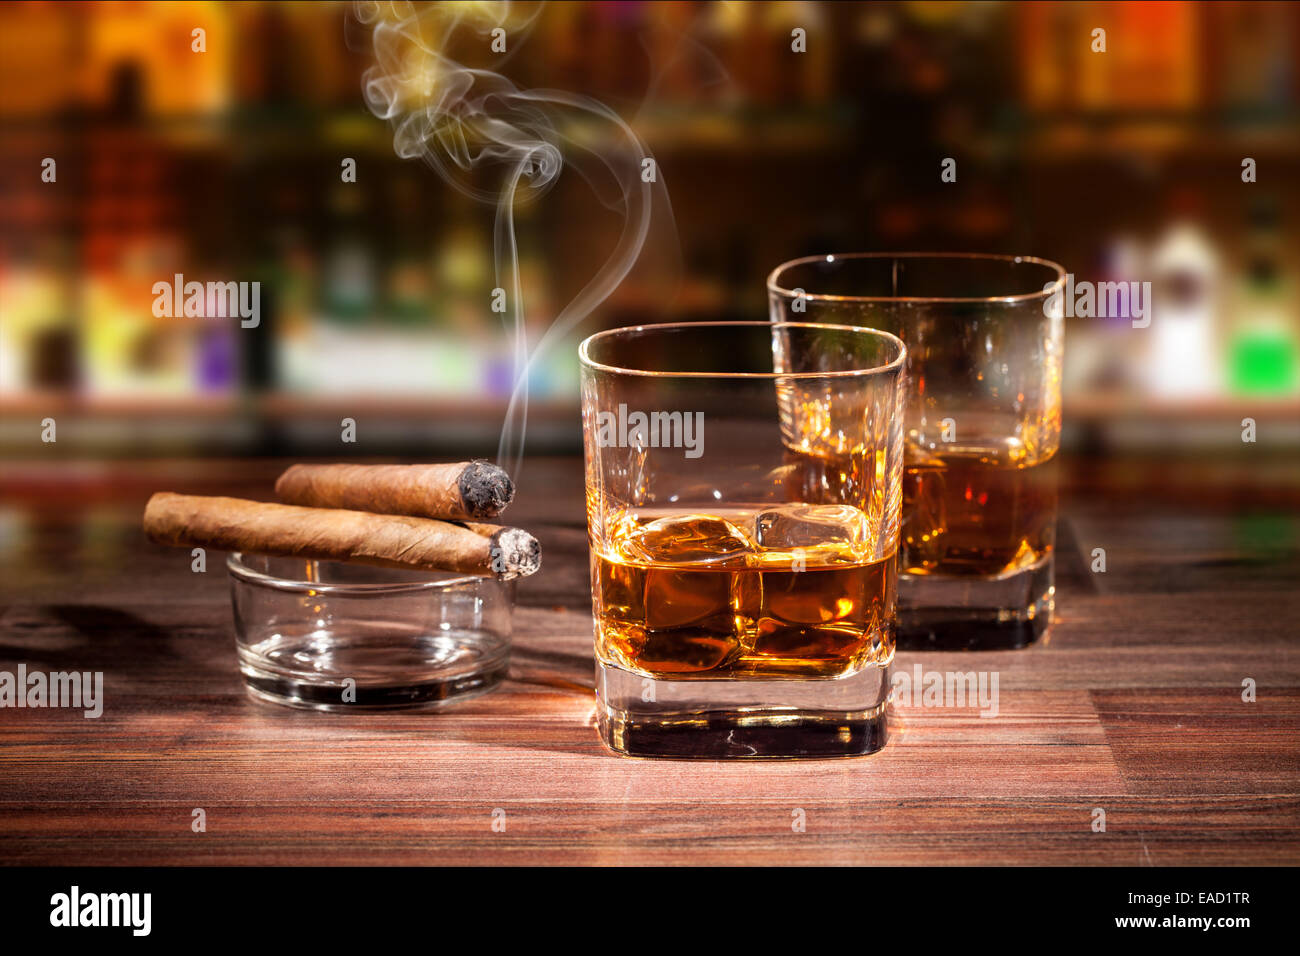 Whiskey drink with smoking cigar on wooden table - Stock Image